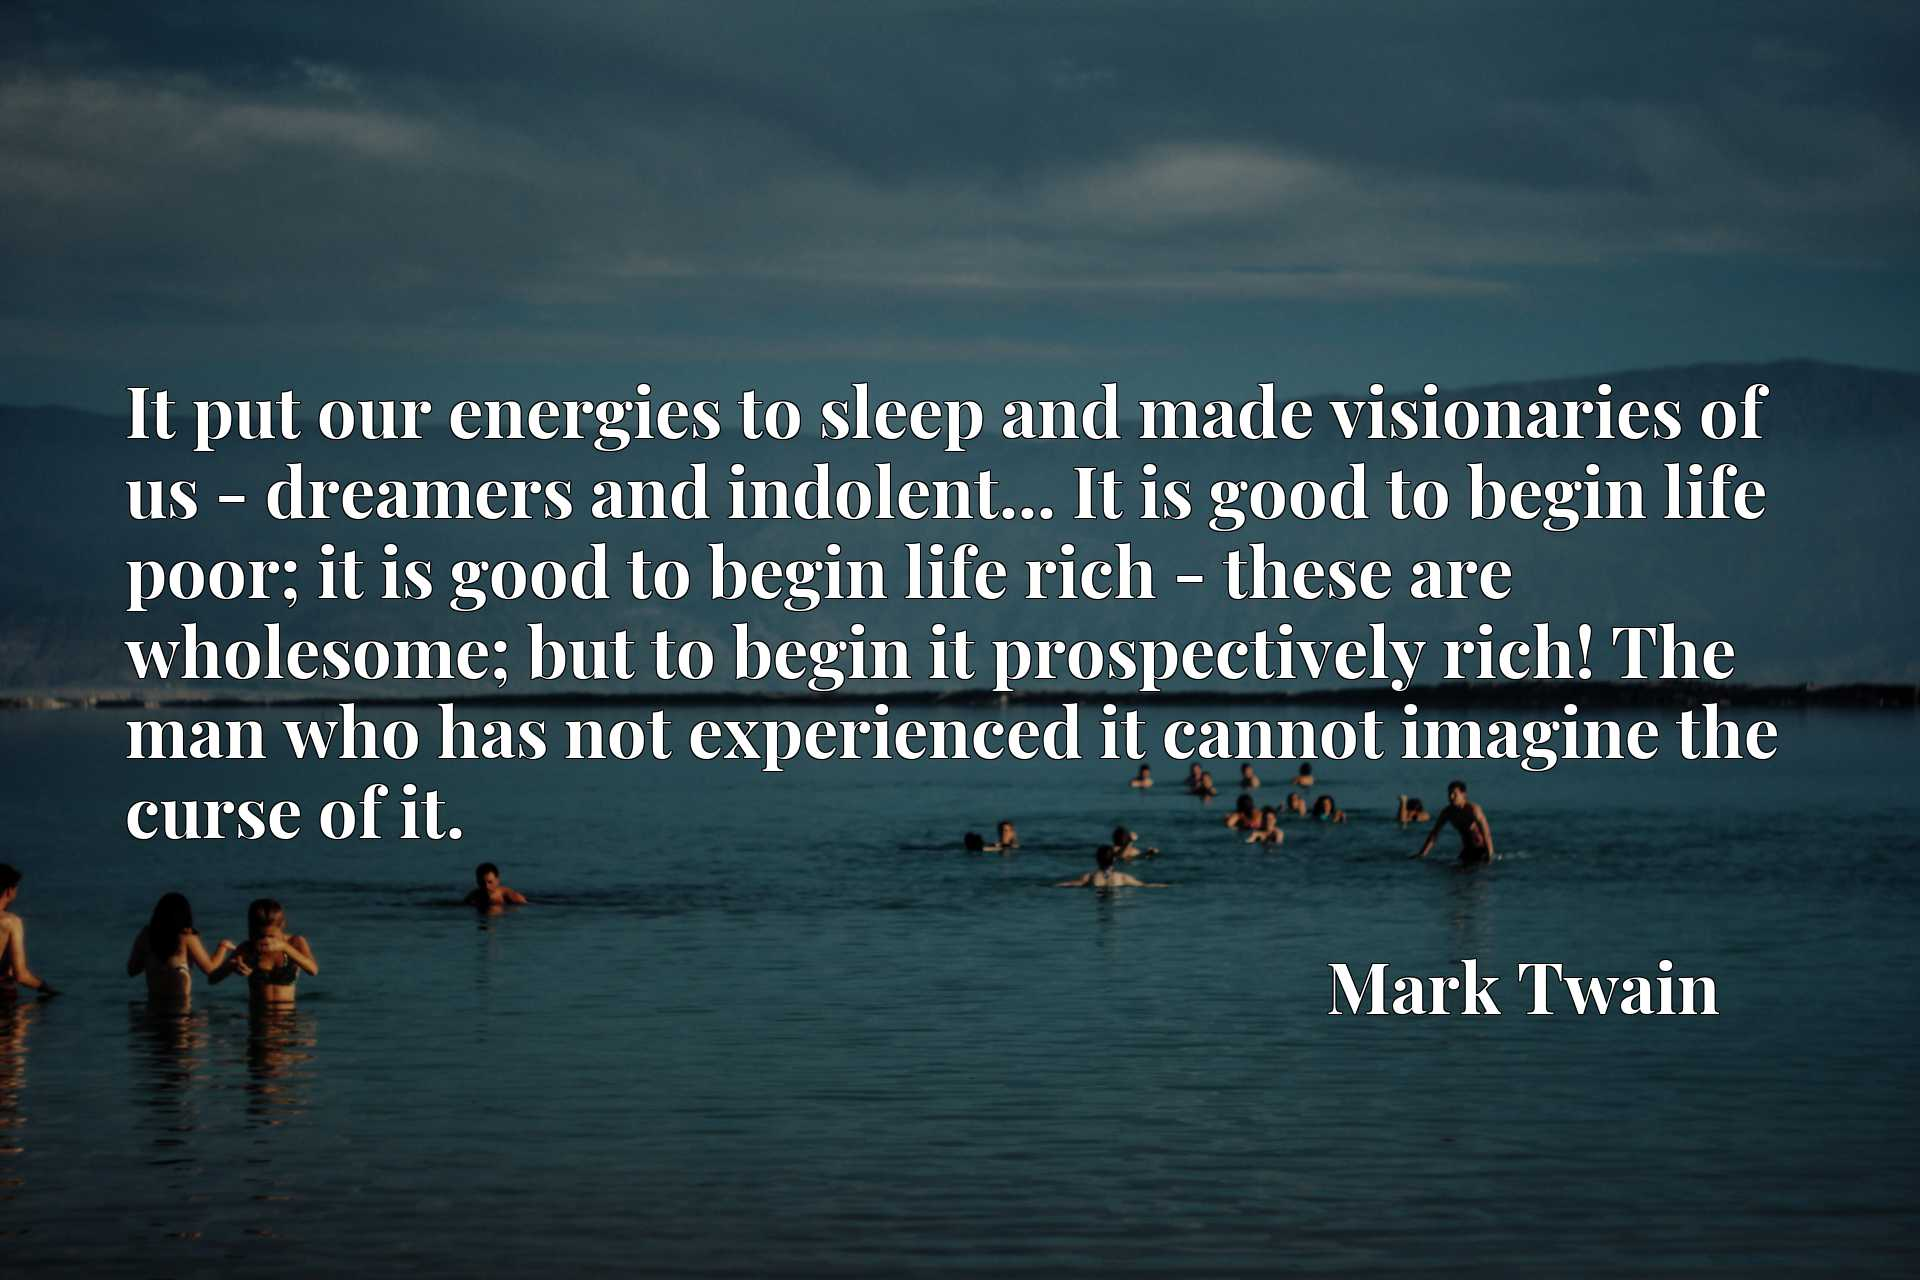 It put our energies to sleep and made visionaries of us - dreamers and indolent... It is good to begin life poor; it is good to begin life rich - these are wholesome; but to begin it prospectively rich! The man who has not experienced it cannot imagine the curse of it.